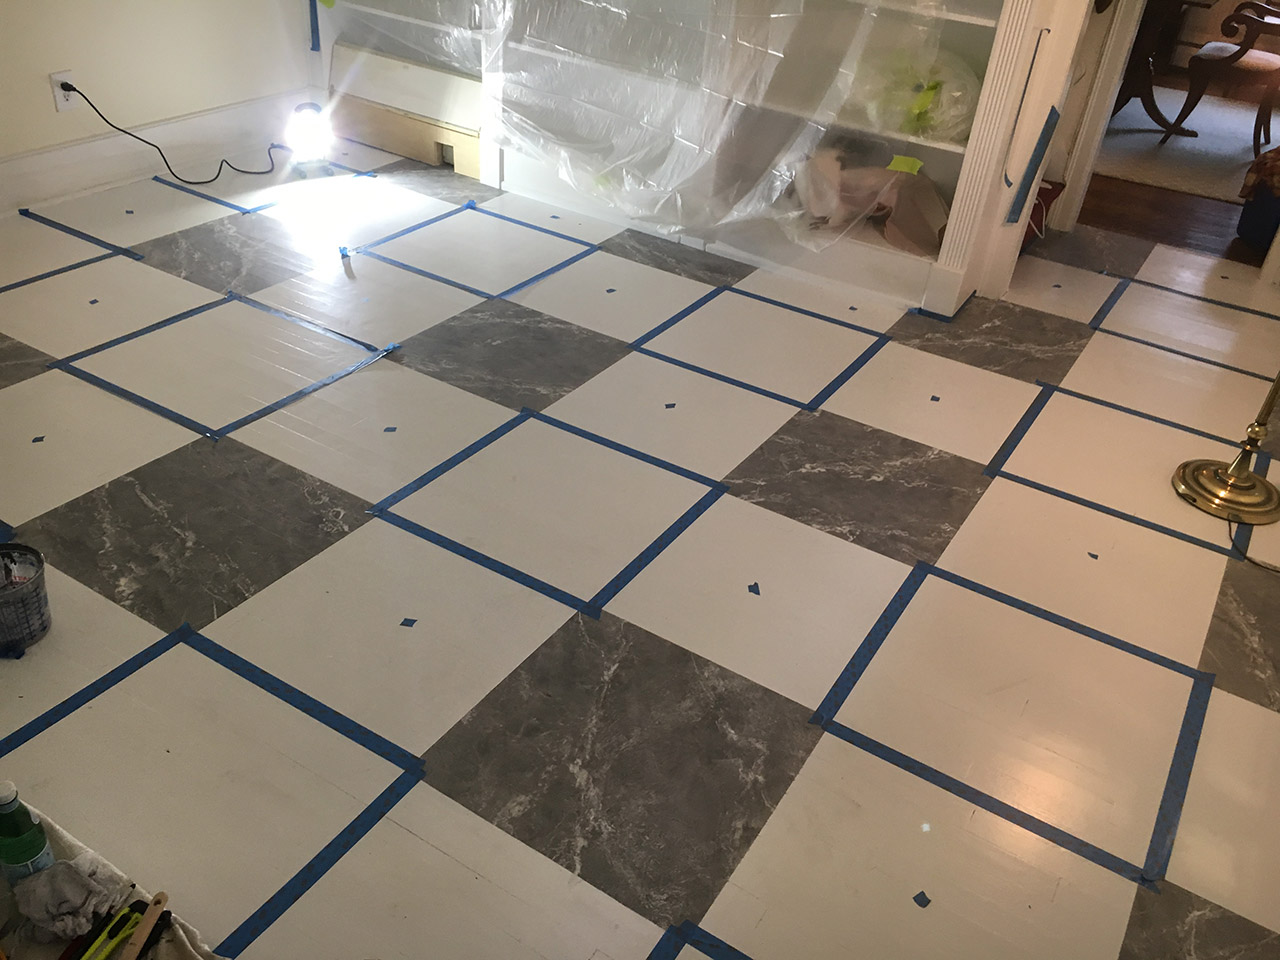 Masking out the light tiles